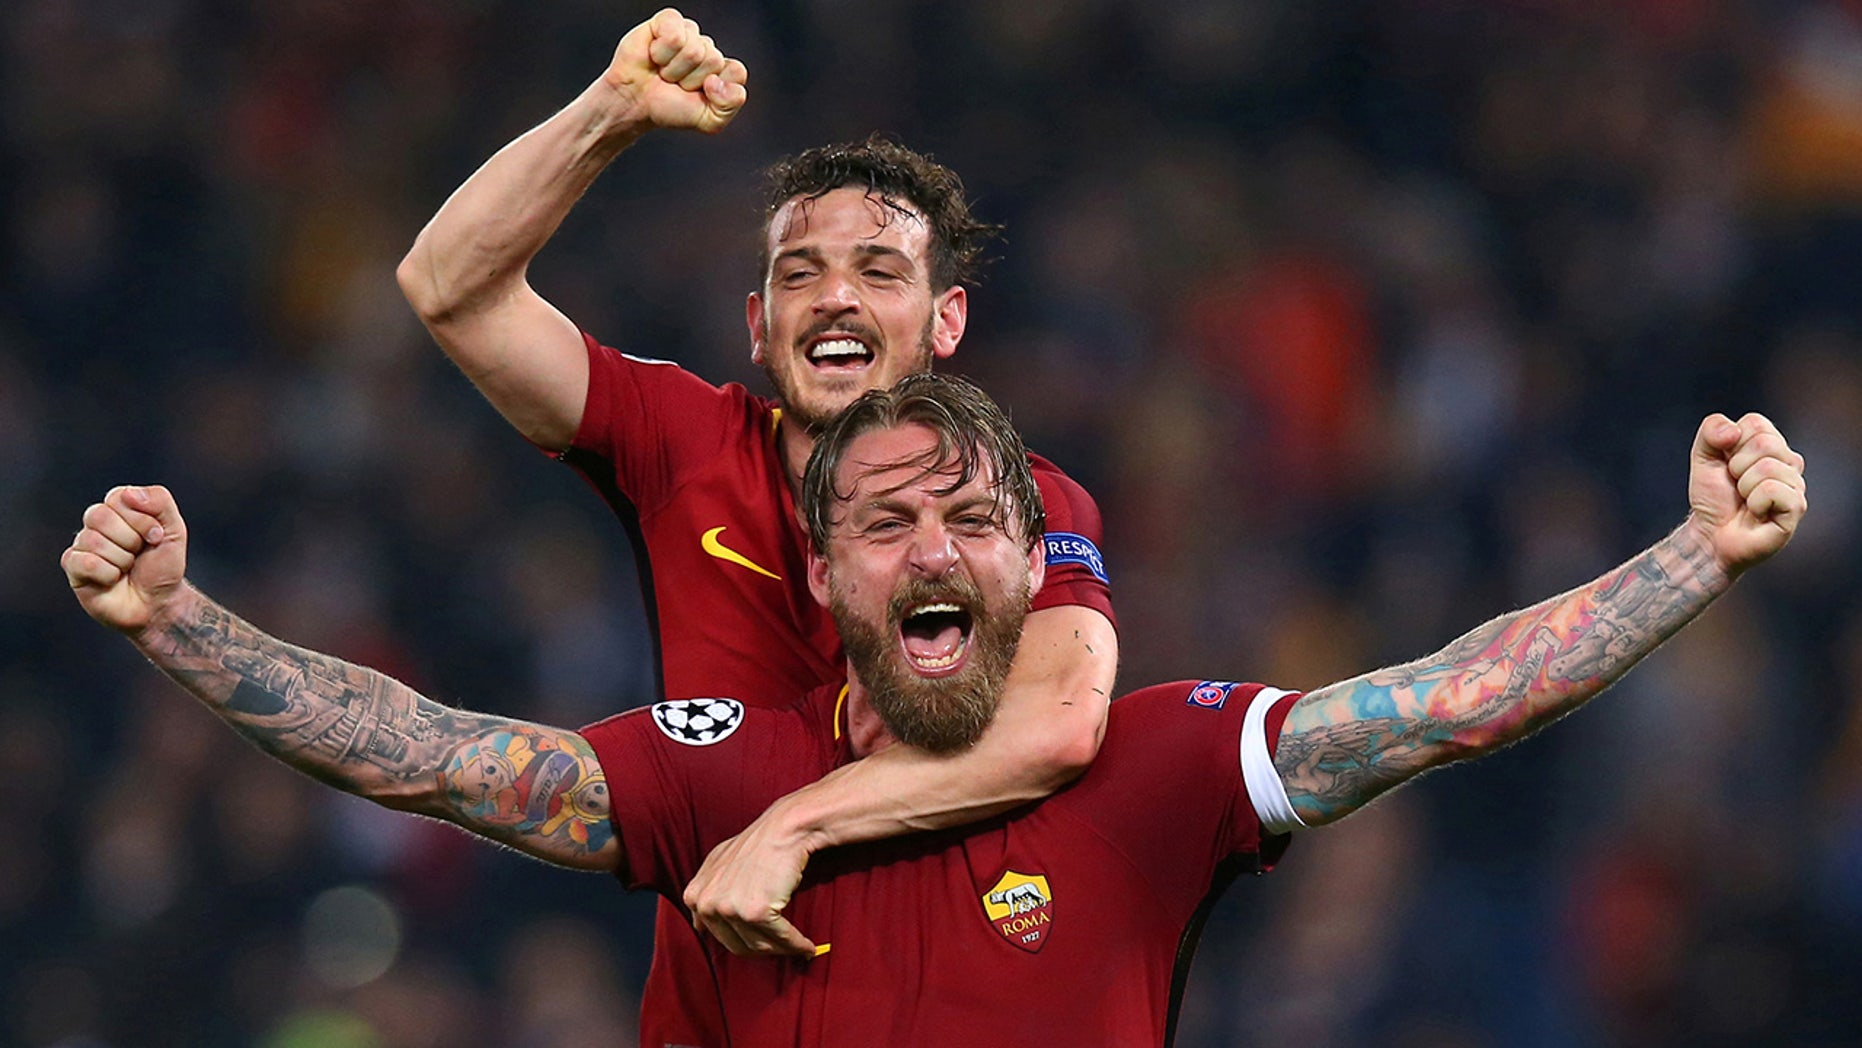 Roma's Daniele De Rossi and Alessandro Florenzi celebrate after the match against Barcelona at the Stadio Olimpico in Rome, Italy.